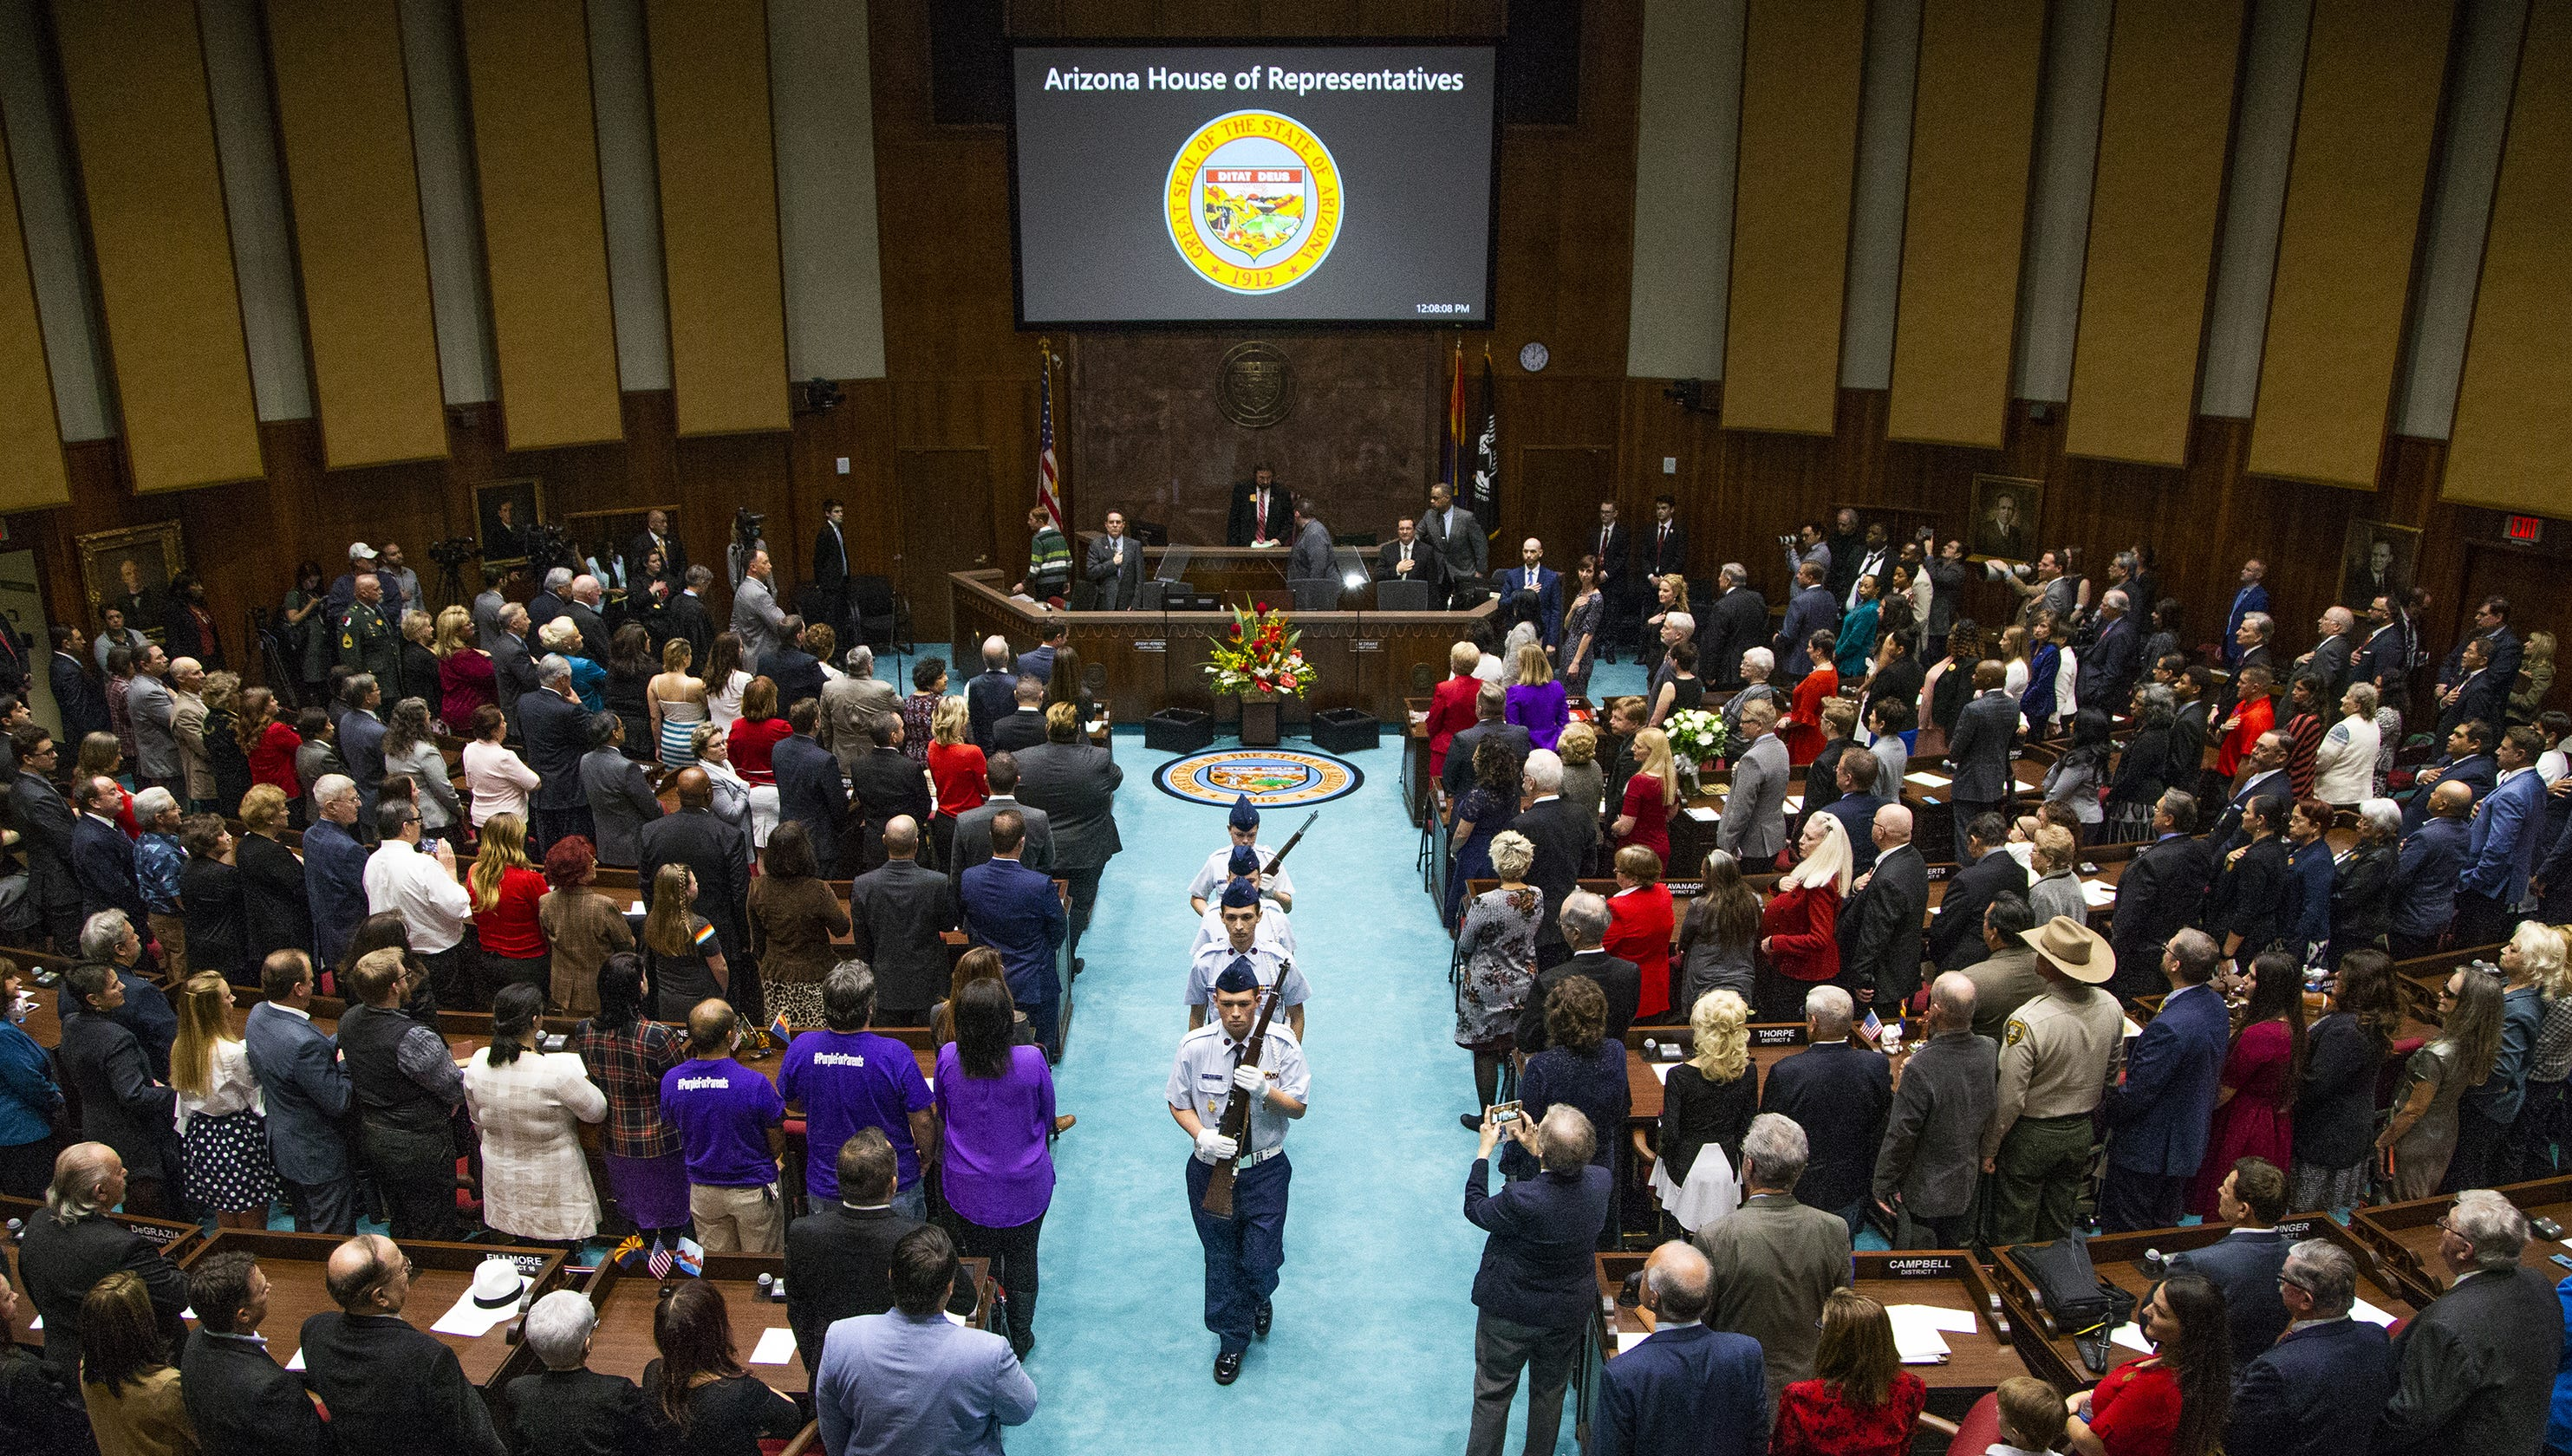 Arizona State Representatives >> Arizona Gov Doug Ducey Gives His 2019 State Of The State Speech